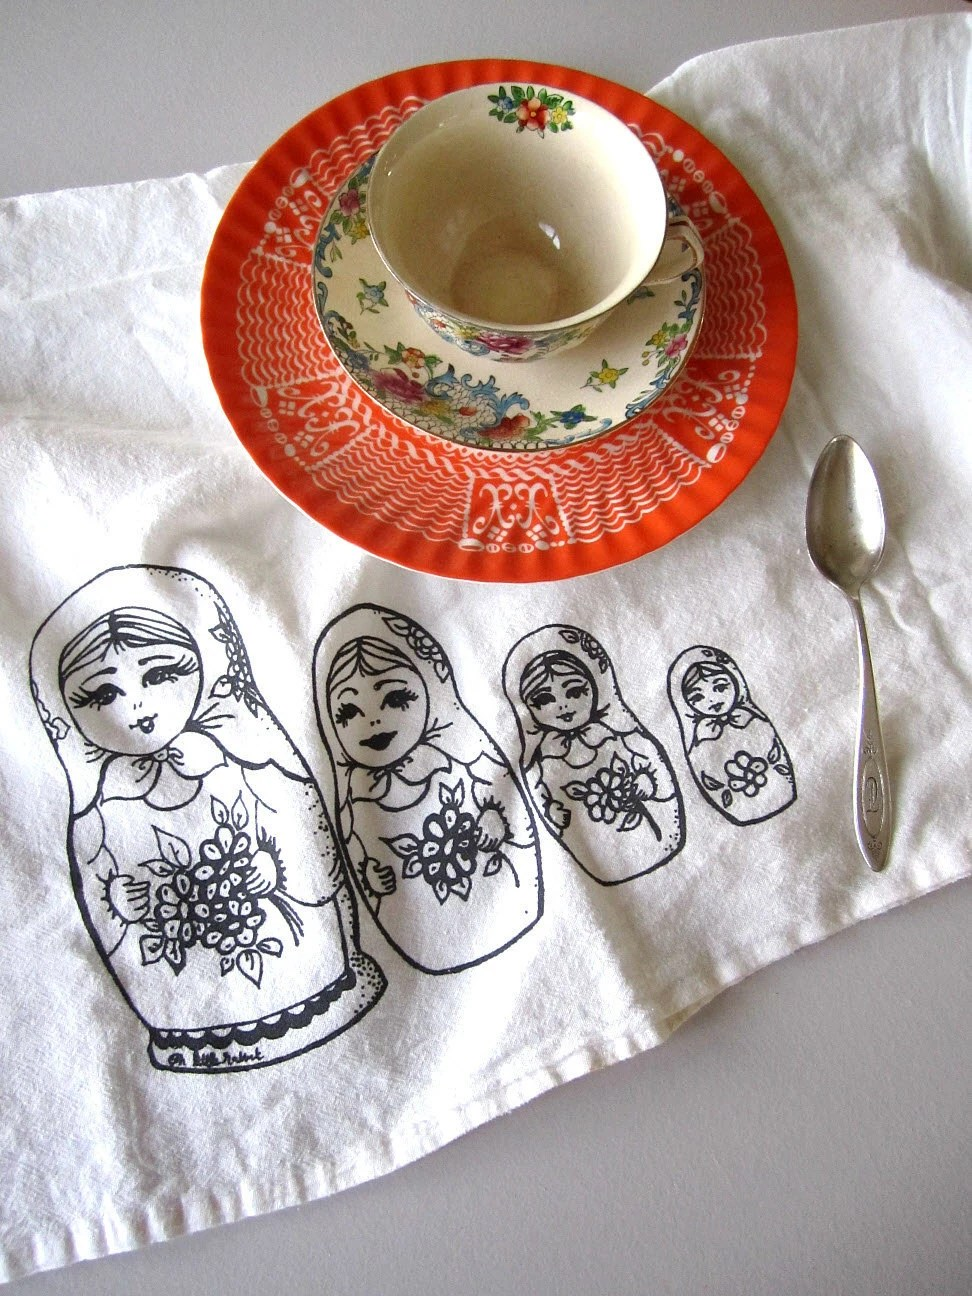 Tea Towel - Screen Printed Organic Cotton Nesting Dolls Flour Sack Towel - Soft and Absorbent - Awesome Kitchen towel - ohlittlerabbit